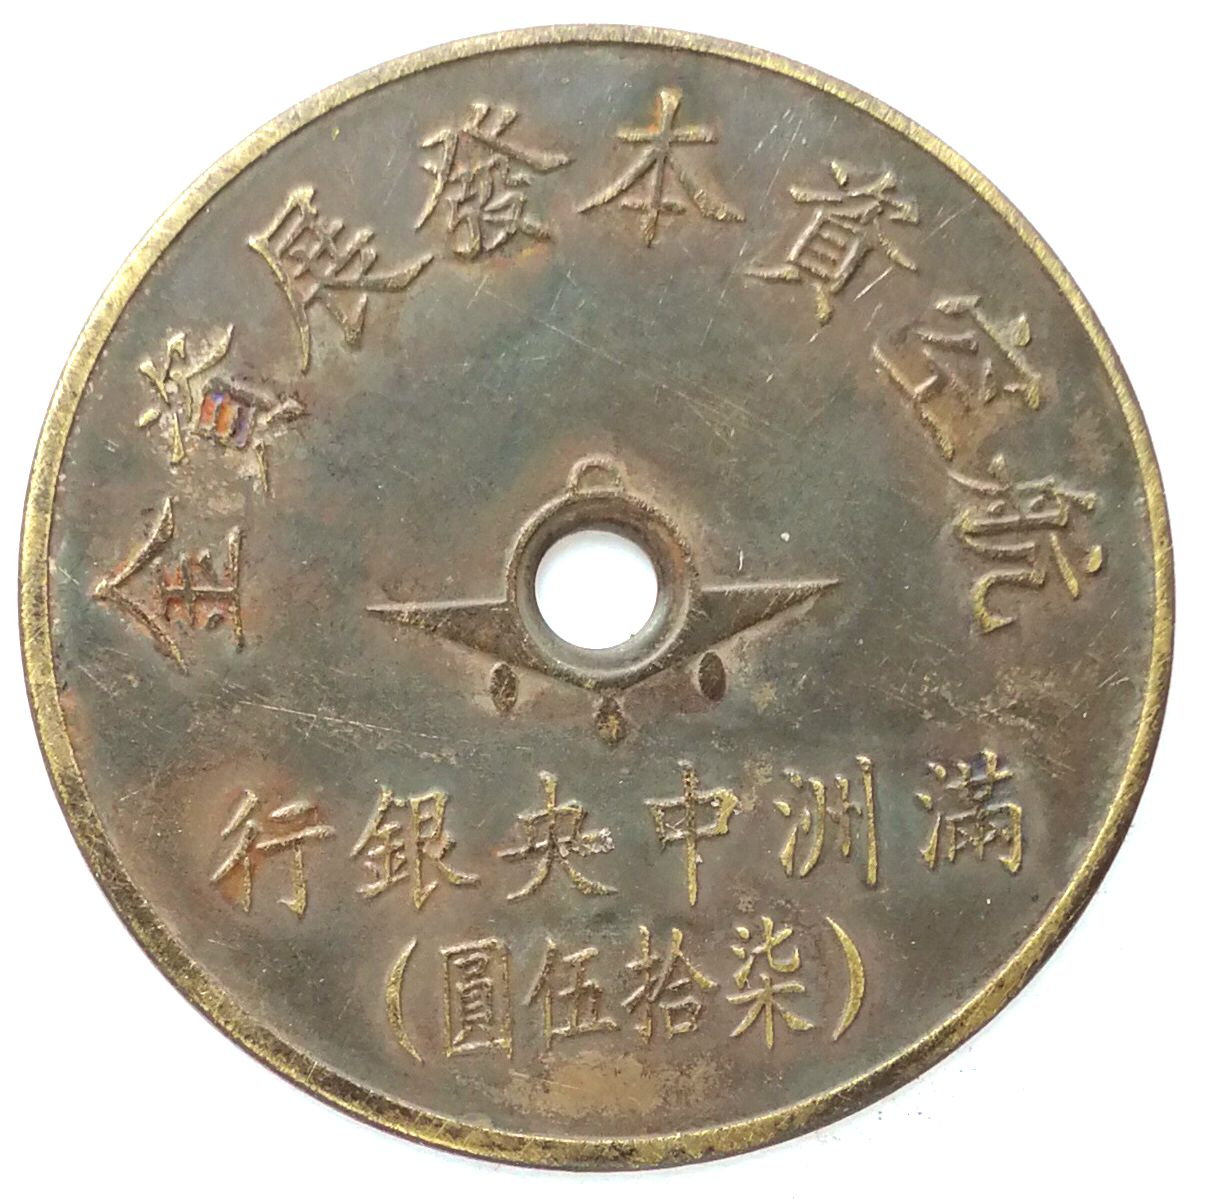 BT524, Manchukuo Aviation Development Fund, Central Bank 75 Yen Token, 1945